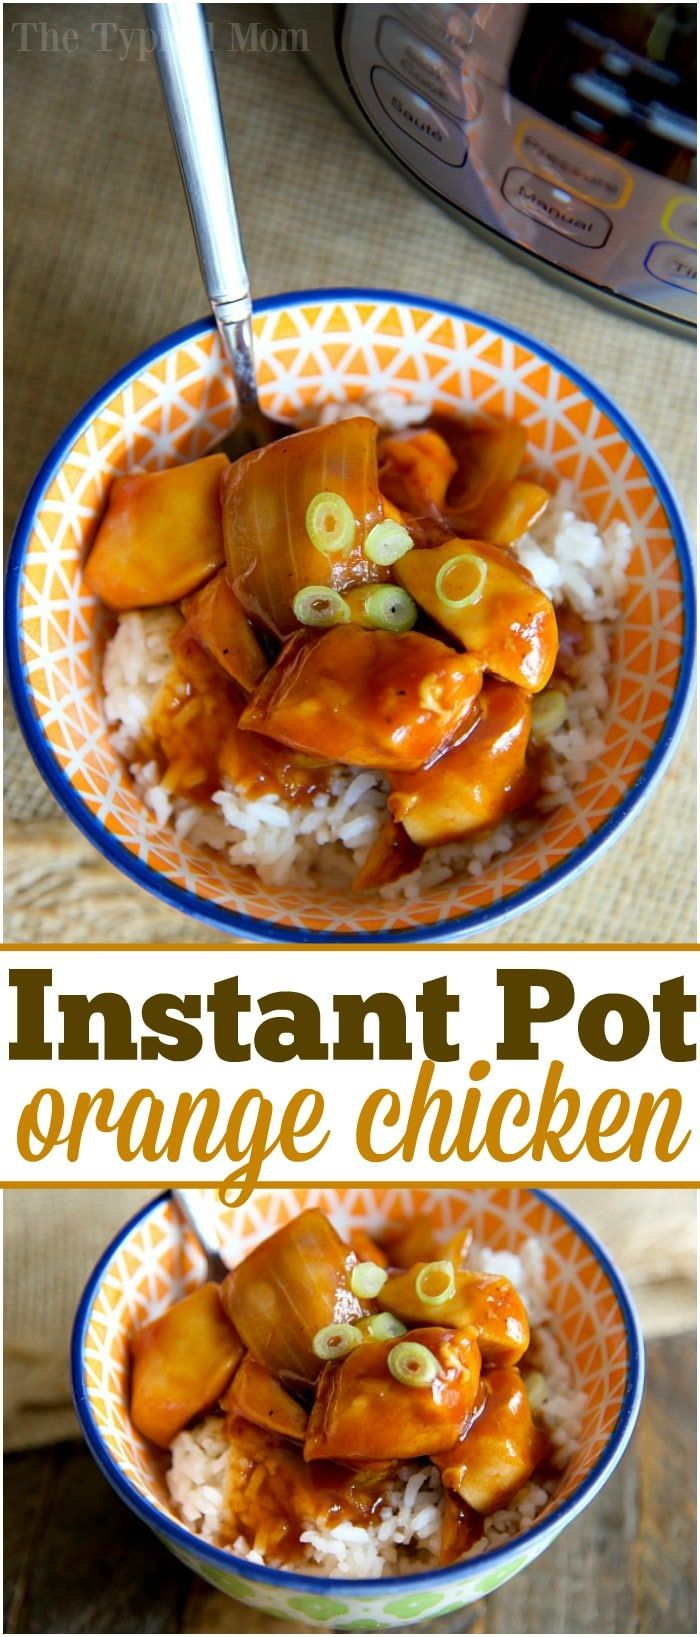 The best Instant Pot orange chicken recipe I've found so far! Super easy to make in less than 10 minutes and a healthy pressure cooker recipe too. via @thetypicalmom